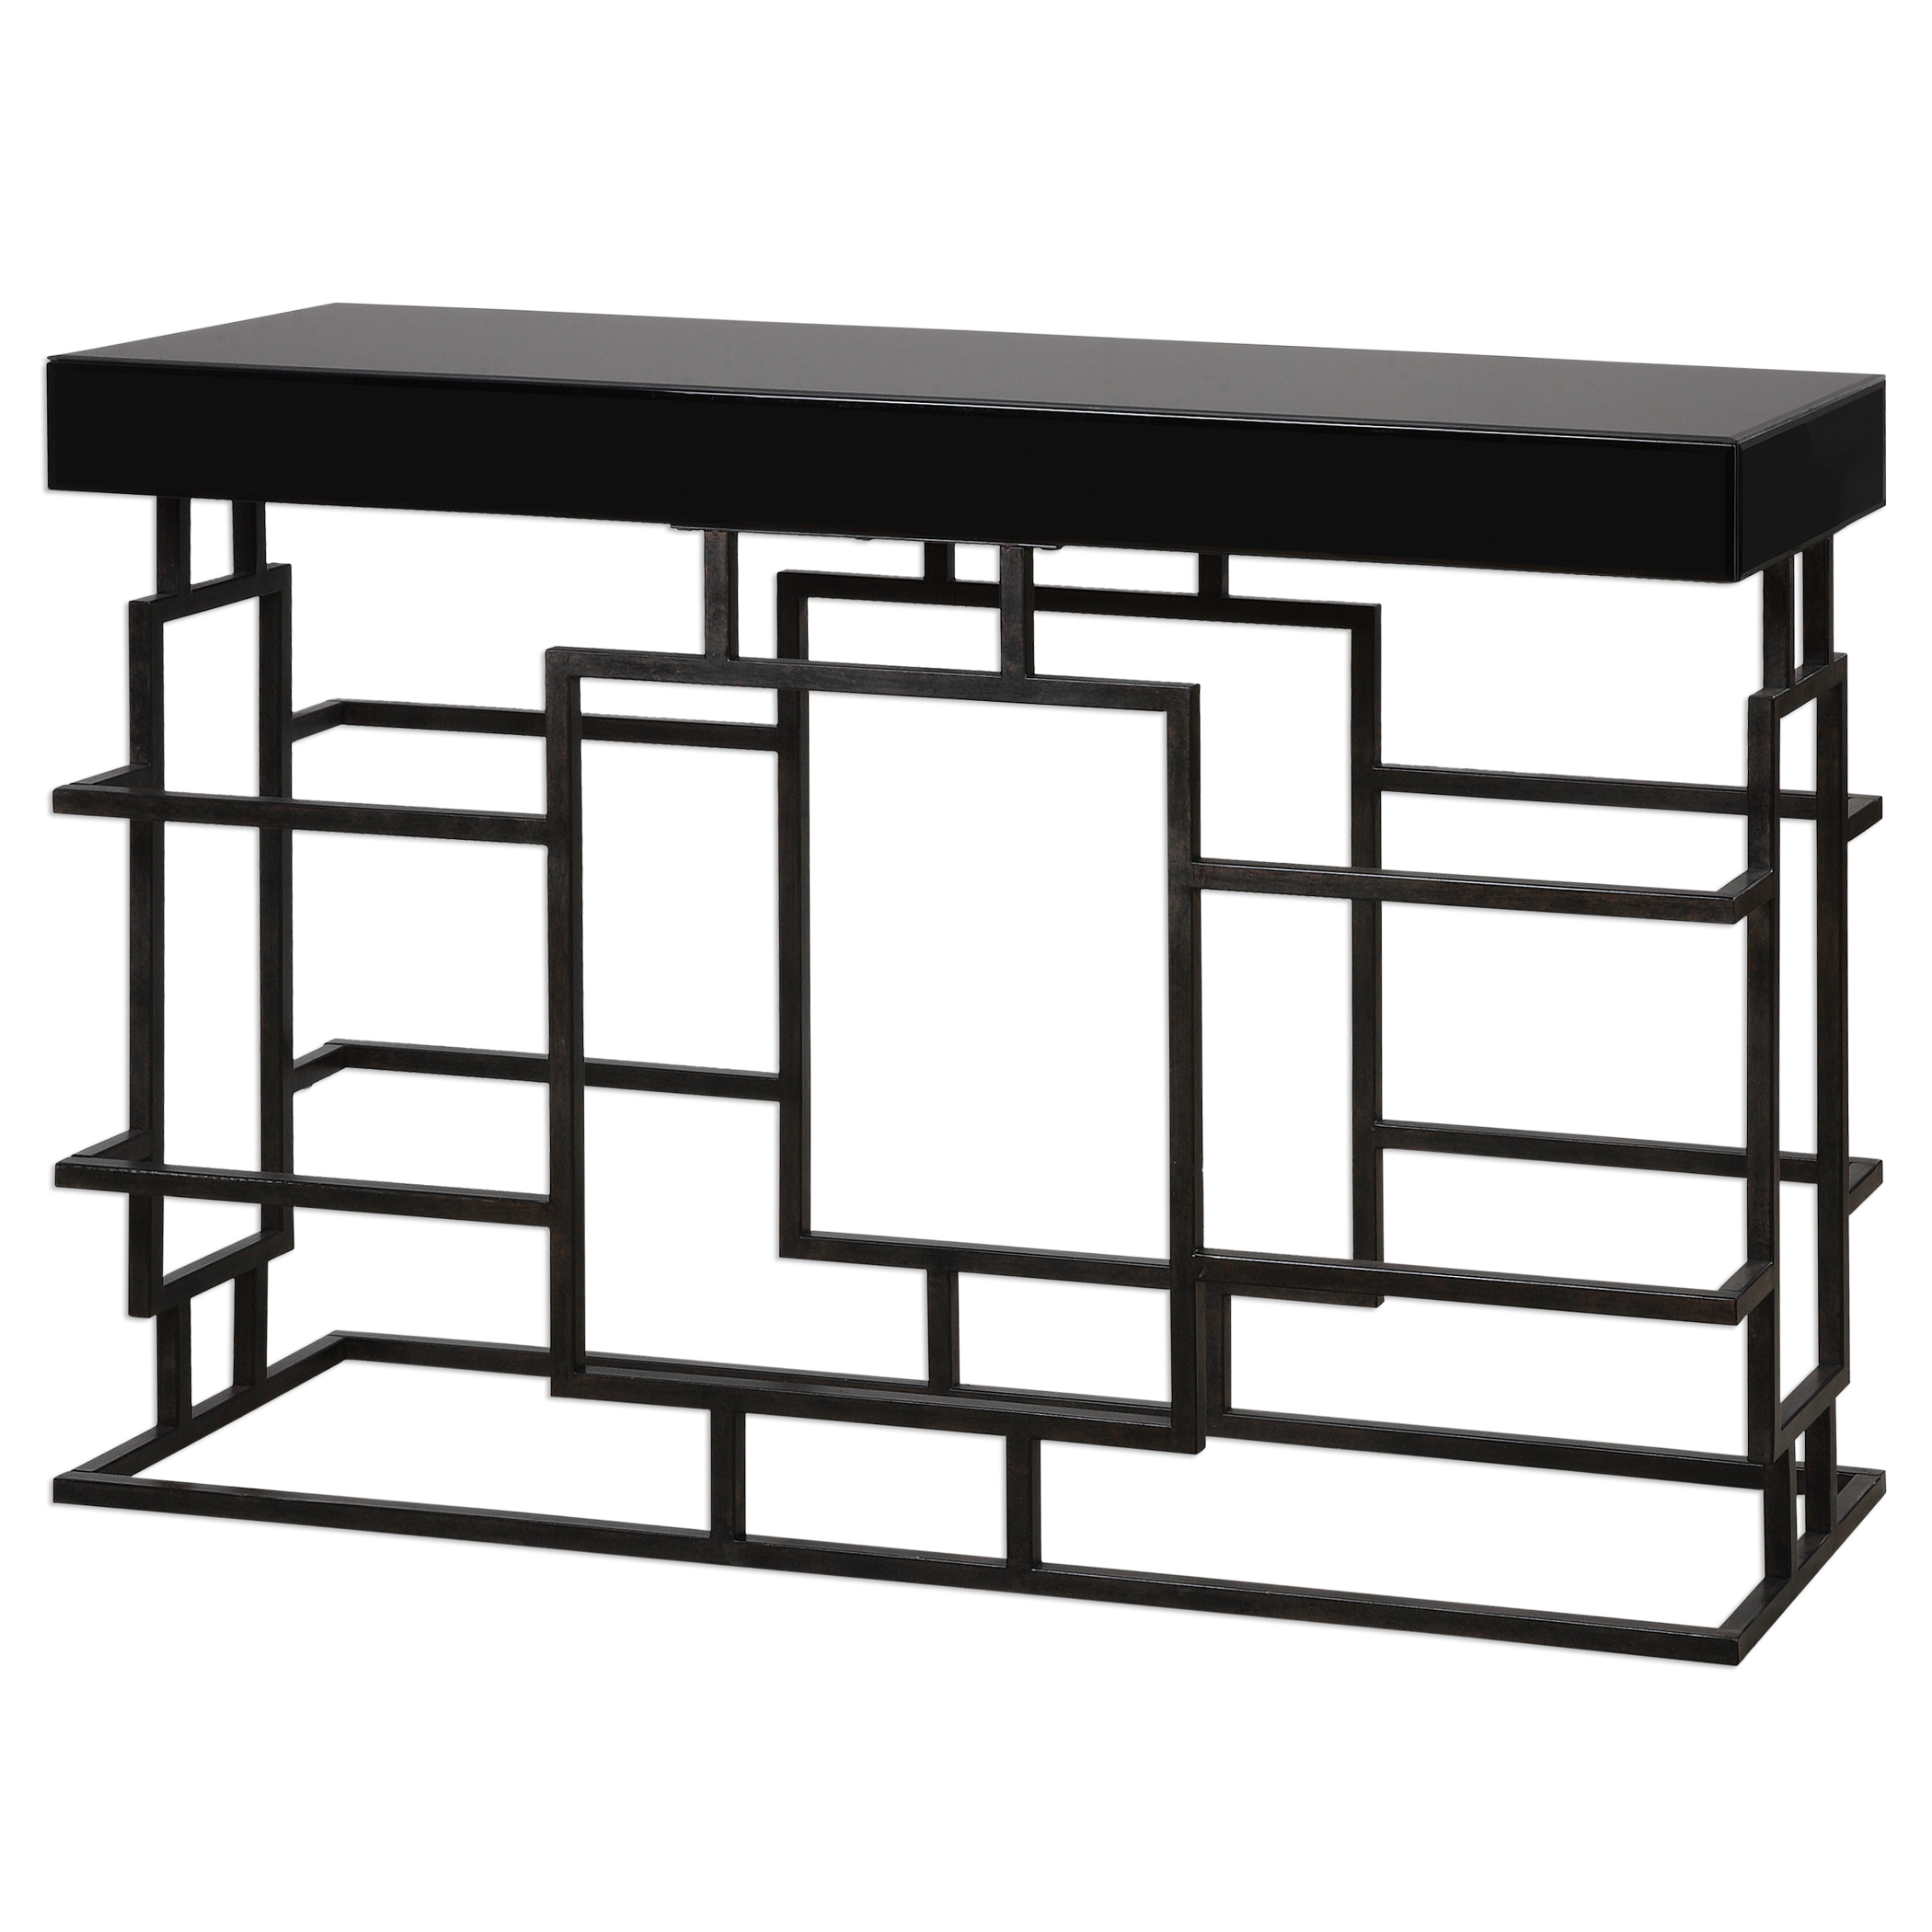 Uttermost Accent Furniture Andy Black Console Table - Item Number: 24643